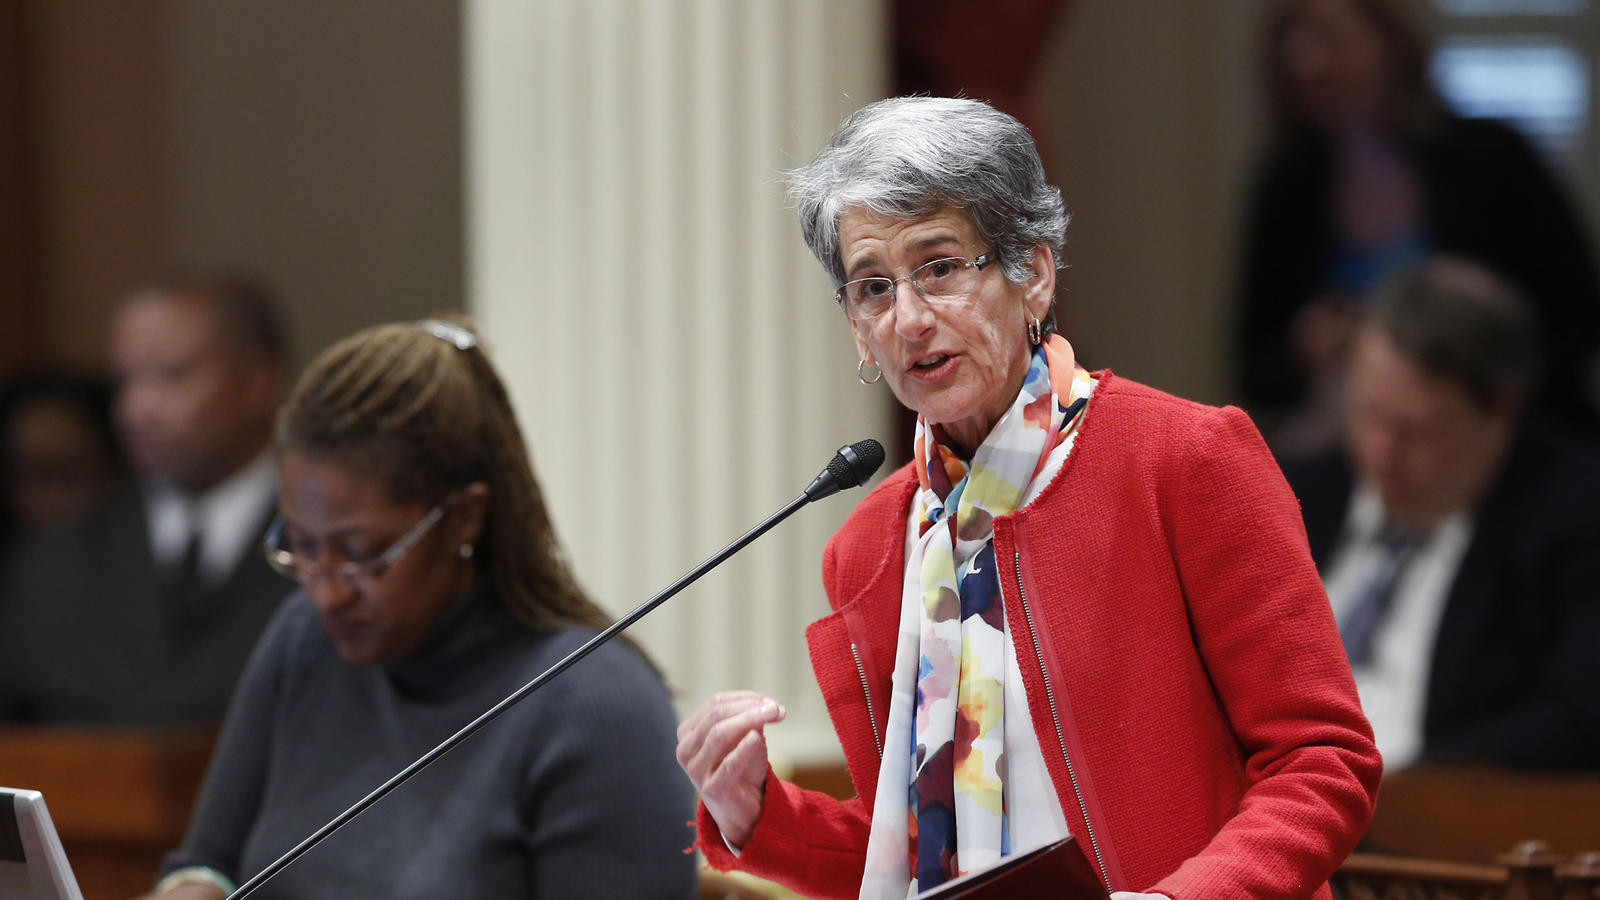 State Sen. Hannah-Beth Jackson (D-Santa Barbara). (Rich Pedroncelli / Associated Press)